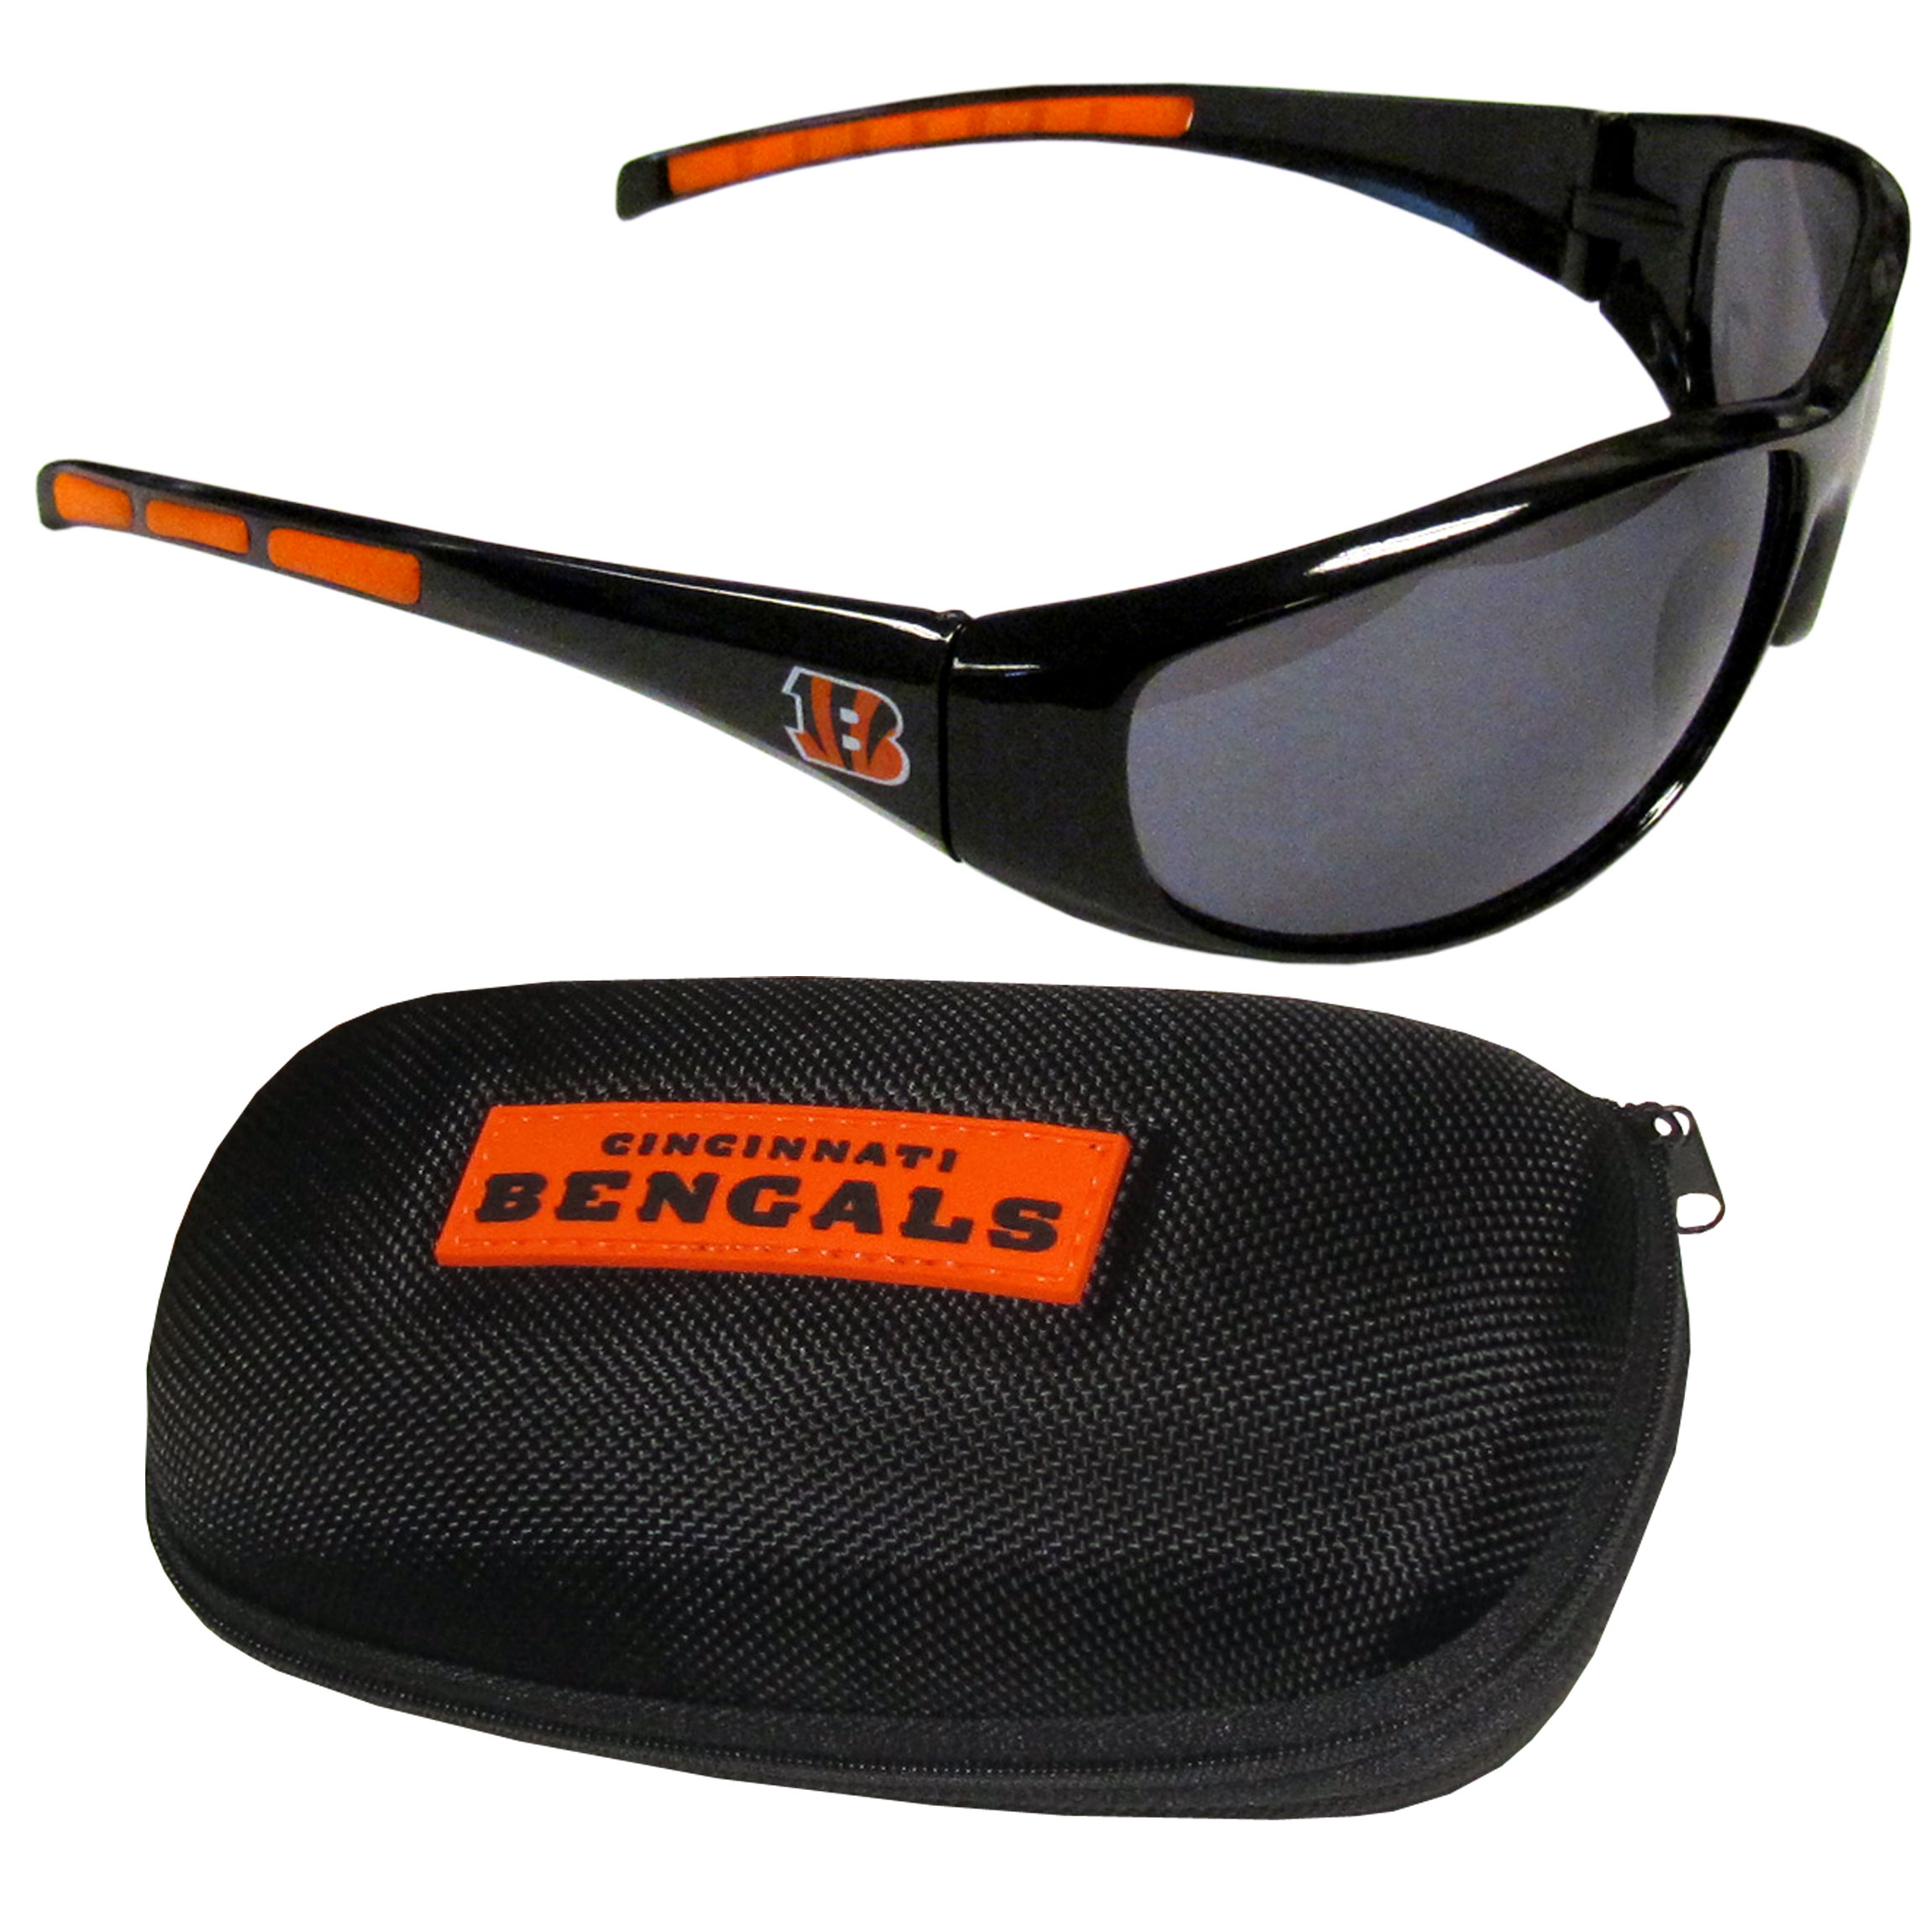 Cincinnati Bengals Wrap Sunglass and Case Set - This great set includes a high quality pair of Cincinnati Bengals wrap sunglasses and hard carrying case.